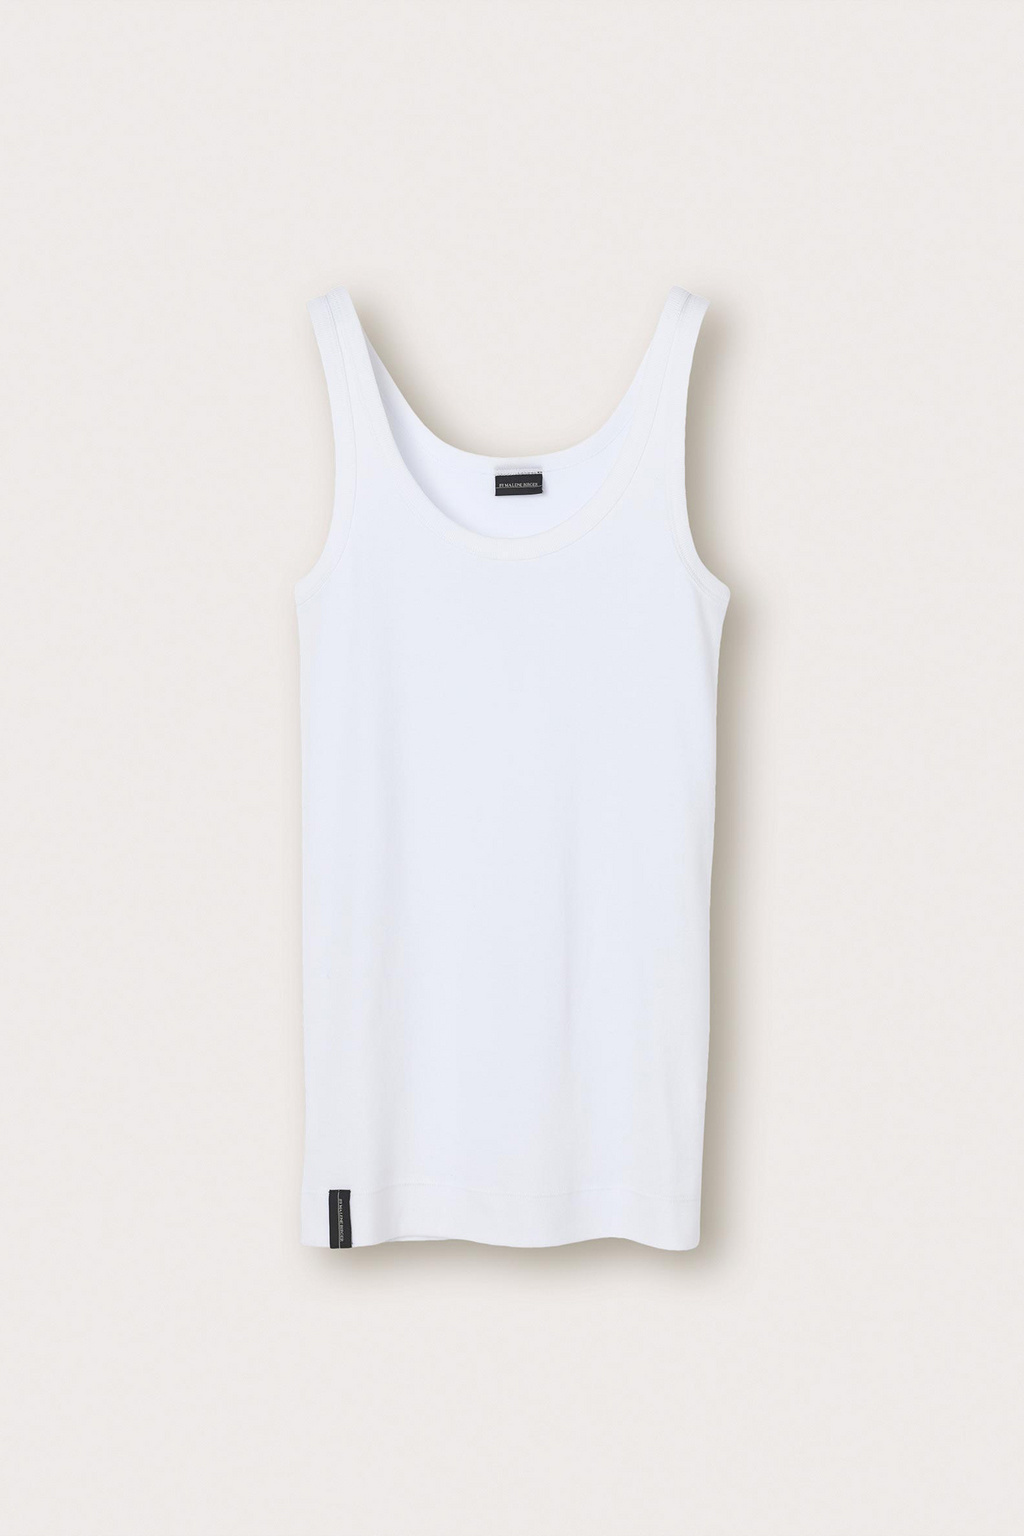 Newdawn Tank Top - Pure Wit-5